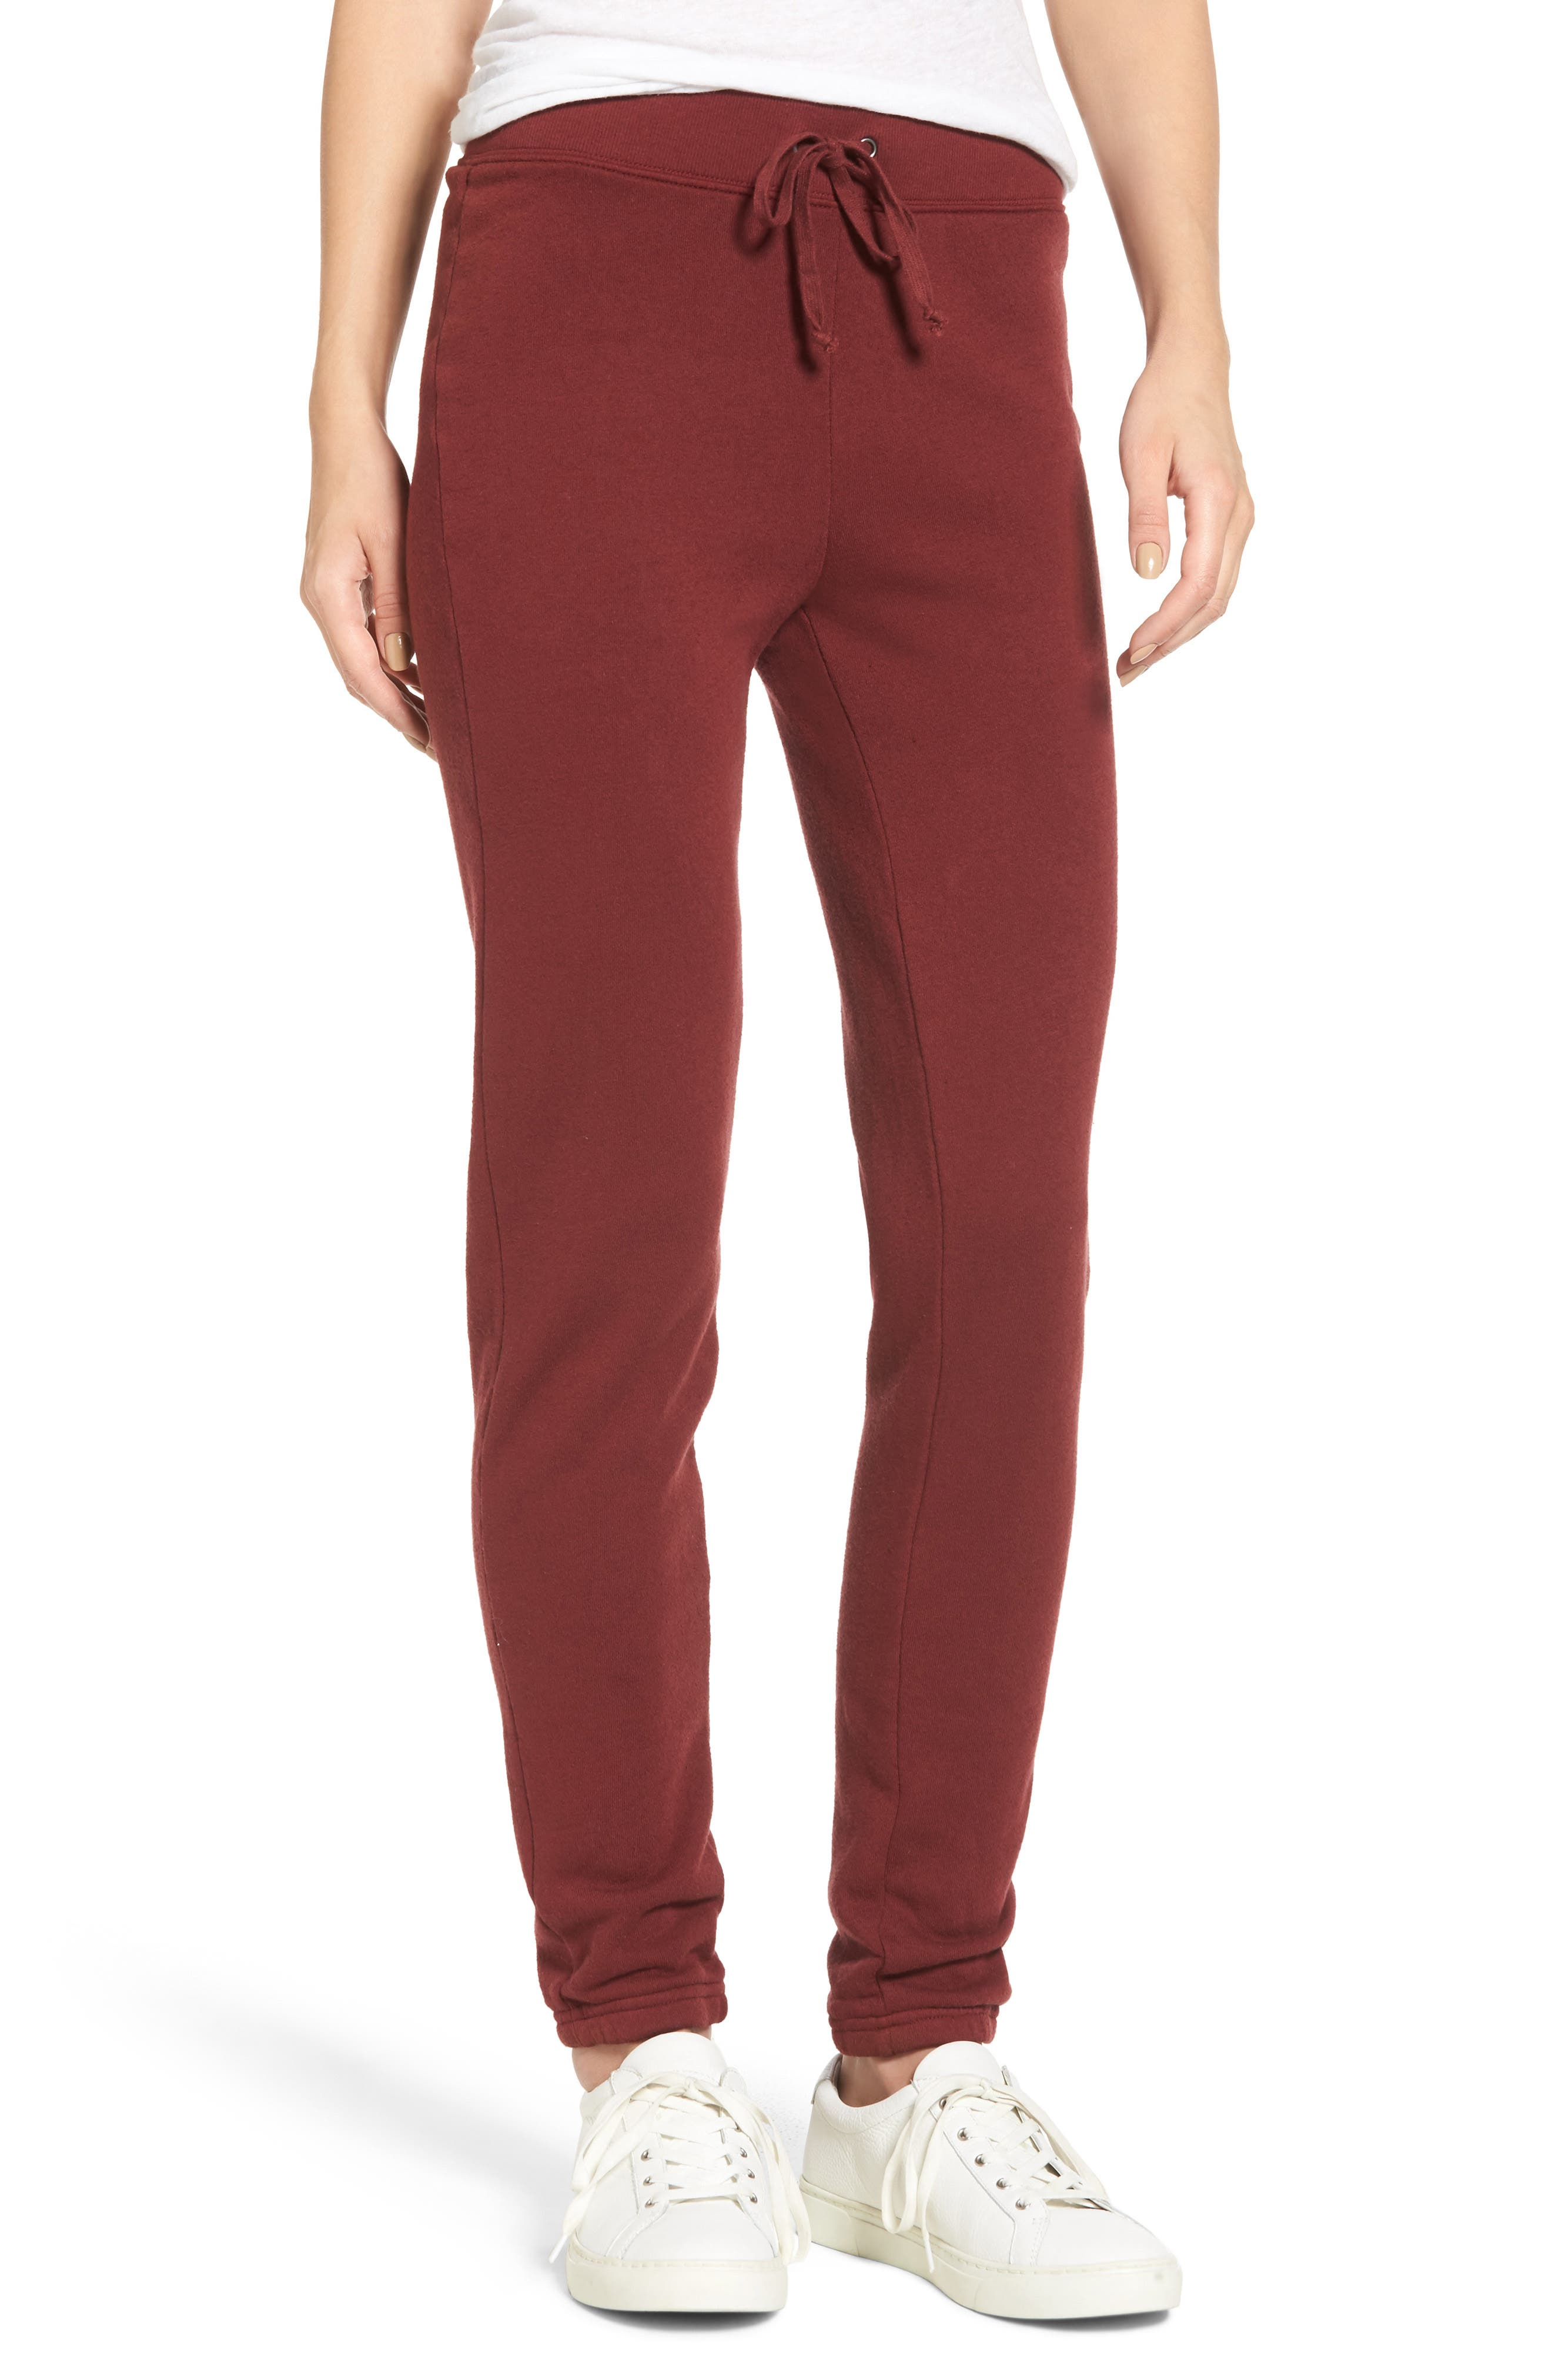 Alternate Image 1 Selected - Pam & Gela Fleece Sweatpants